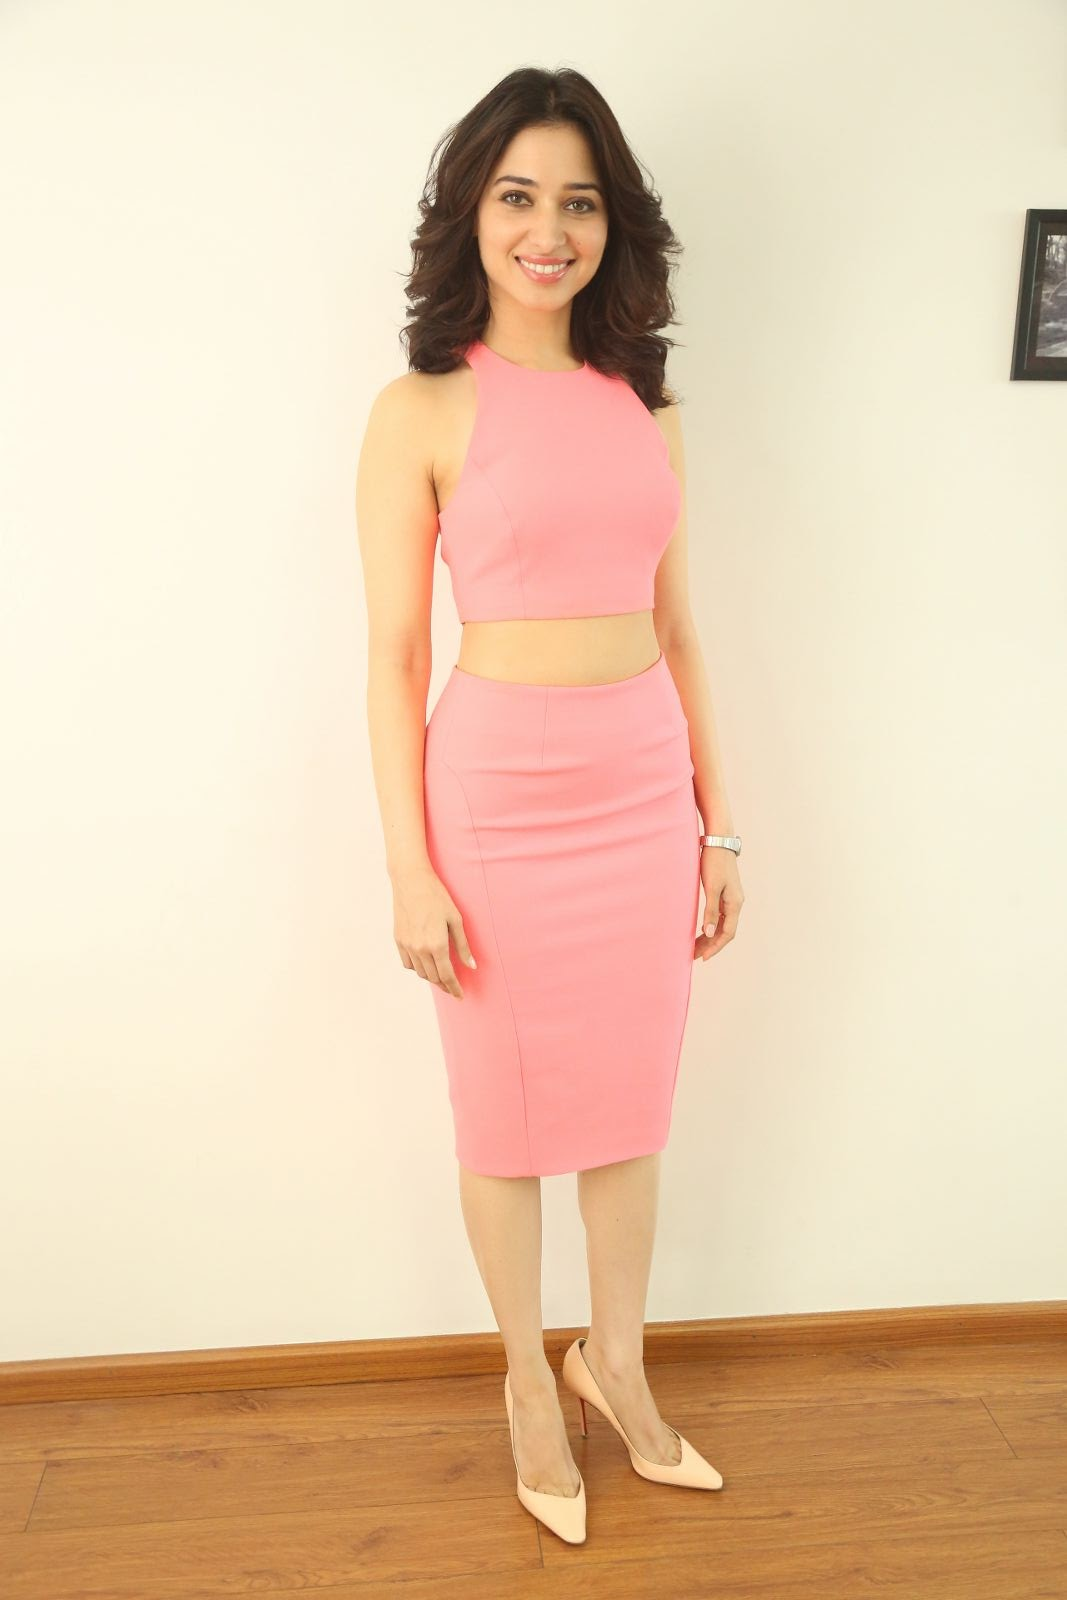 pictures gallery latest images of tamanna latest photos hot gallery